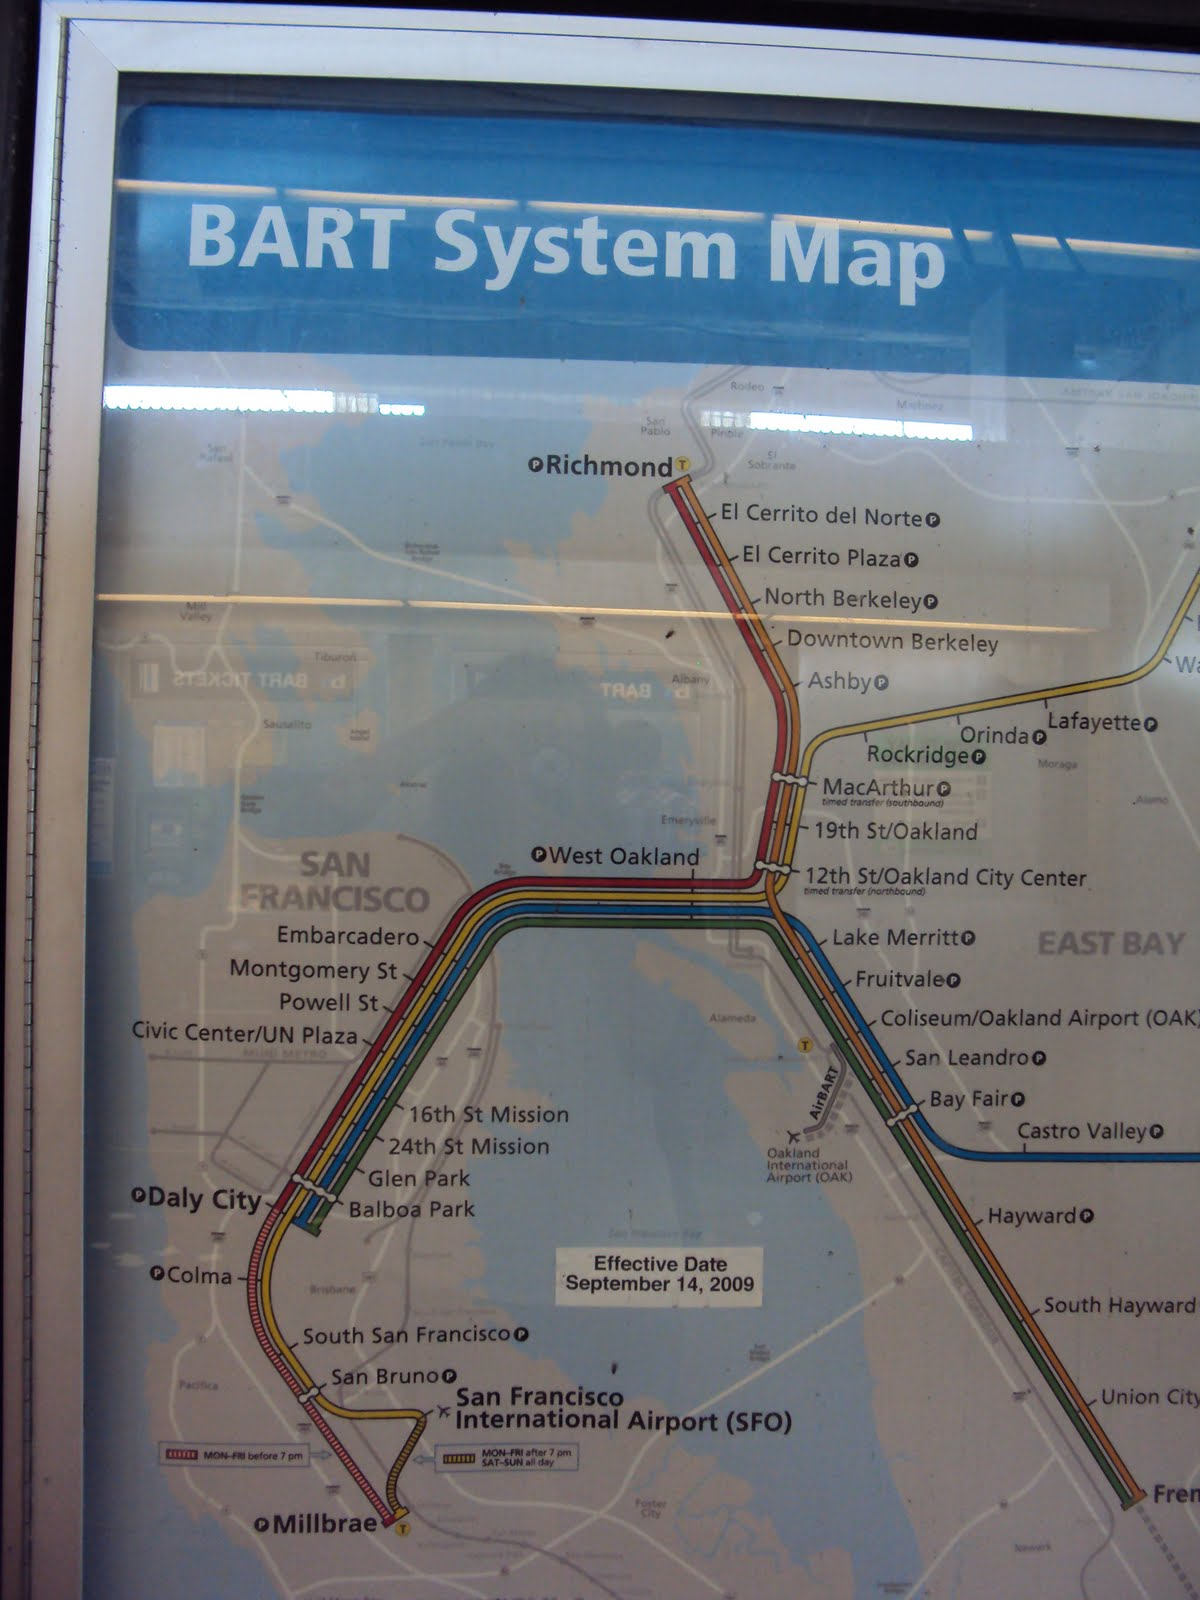 He bought us some BART passes San